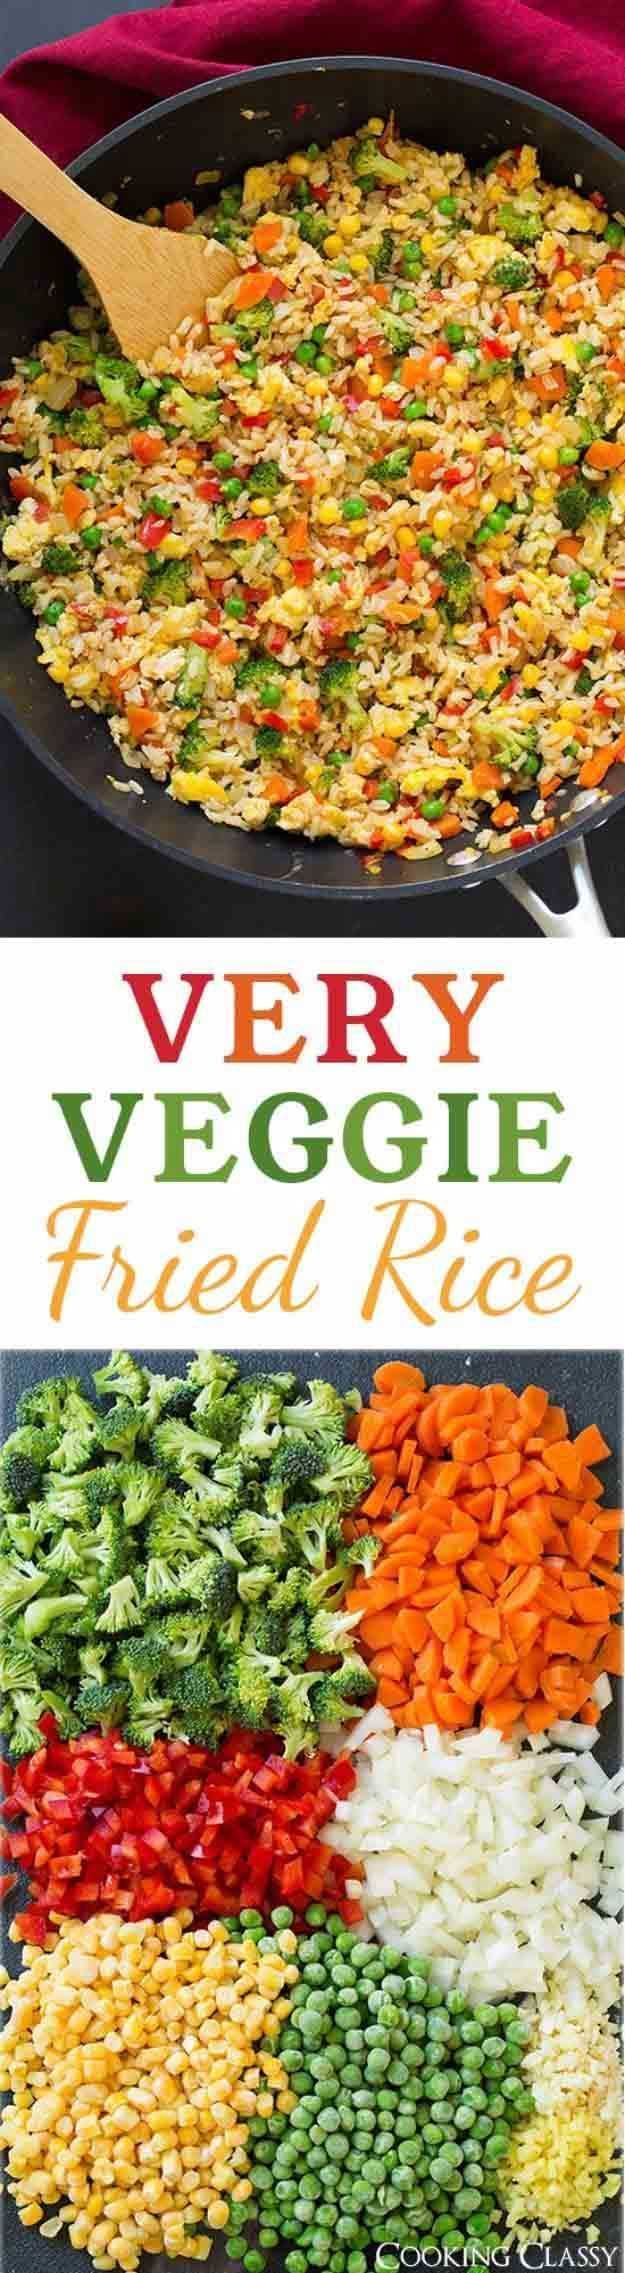 Quick and Easy Healthy Dinner Recipes - Very Veggie Fried Rice - Awesome Recipes For Weight Loss - Great Receipes For One, For Two or For Family Gatherings - Quick Recipes for When You're On A Budget - Chicken and Zucchini Dishes Under 500 Calories - Quick Low Carb Dinners With Beef or Shrimp or Even Vegetarian - Amazing Dishes For Picky Eaters - http://thegoddess.com/easy-healthy-dinner-receipes #shrimprecipesfordinner